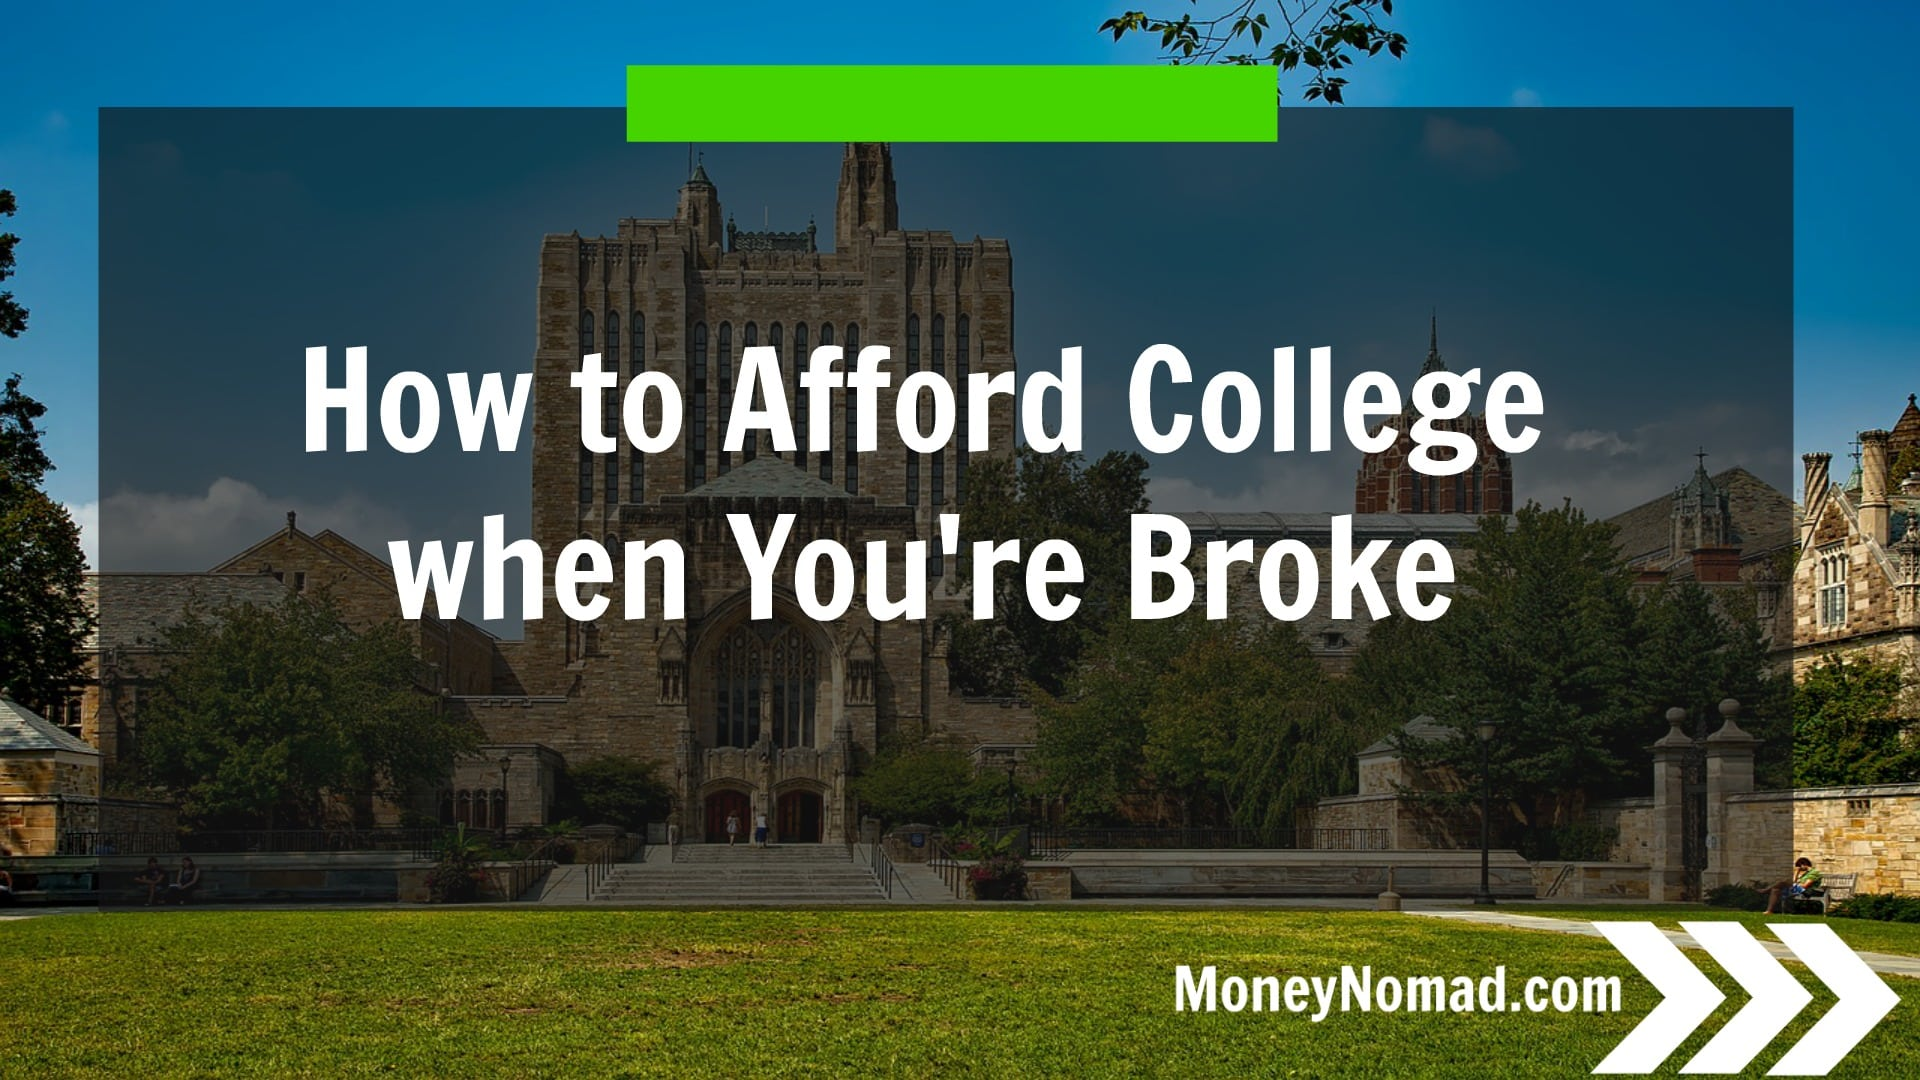 mn-how-to-afford-college-when-youre-broke